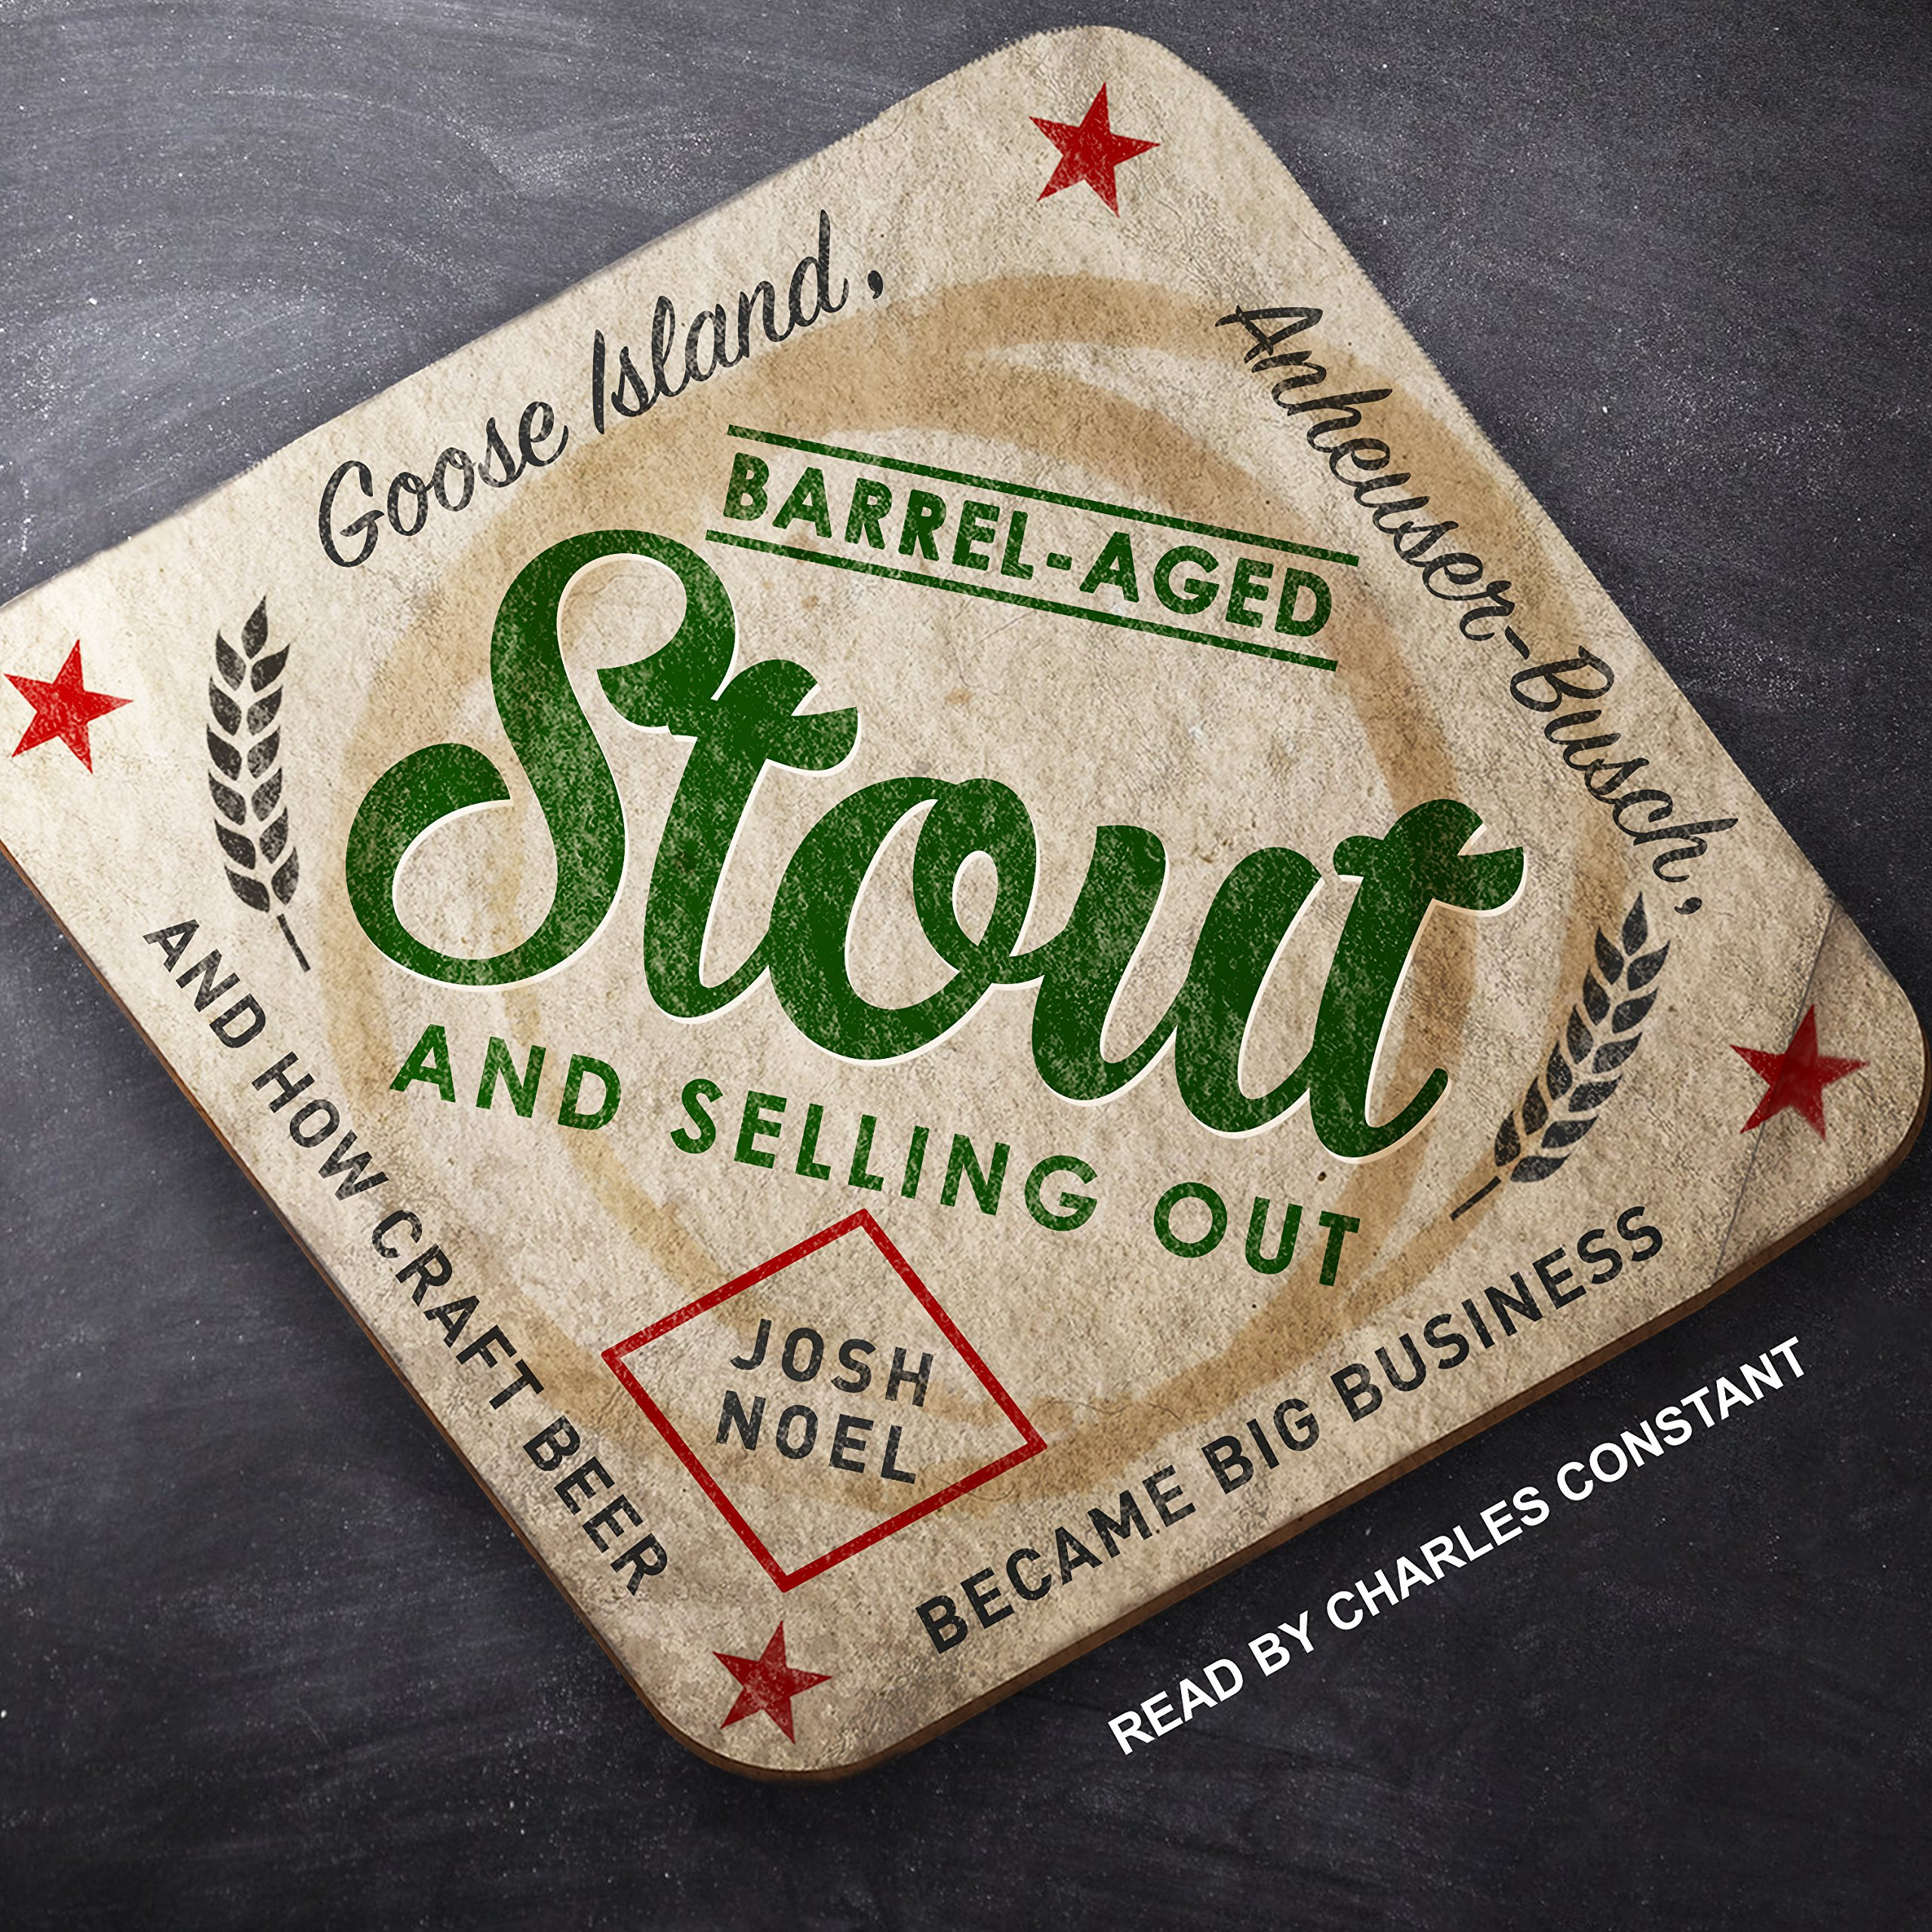 Barrel-Aged Stout and Selling Out: Goose Island, Anheuser-Busch, and How Craft Beer Became Big Business: Amazon.es: Josh Noel, Charles Constant: Libros en ...